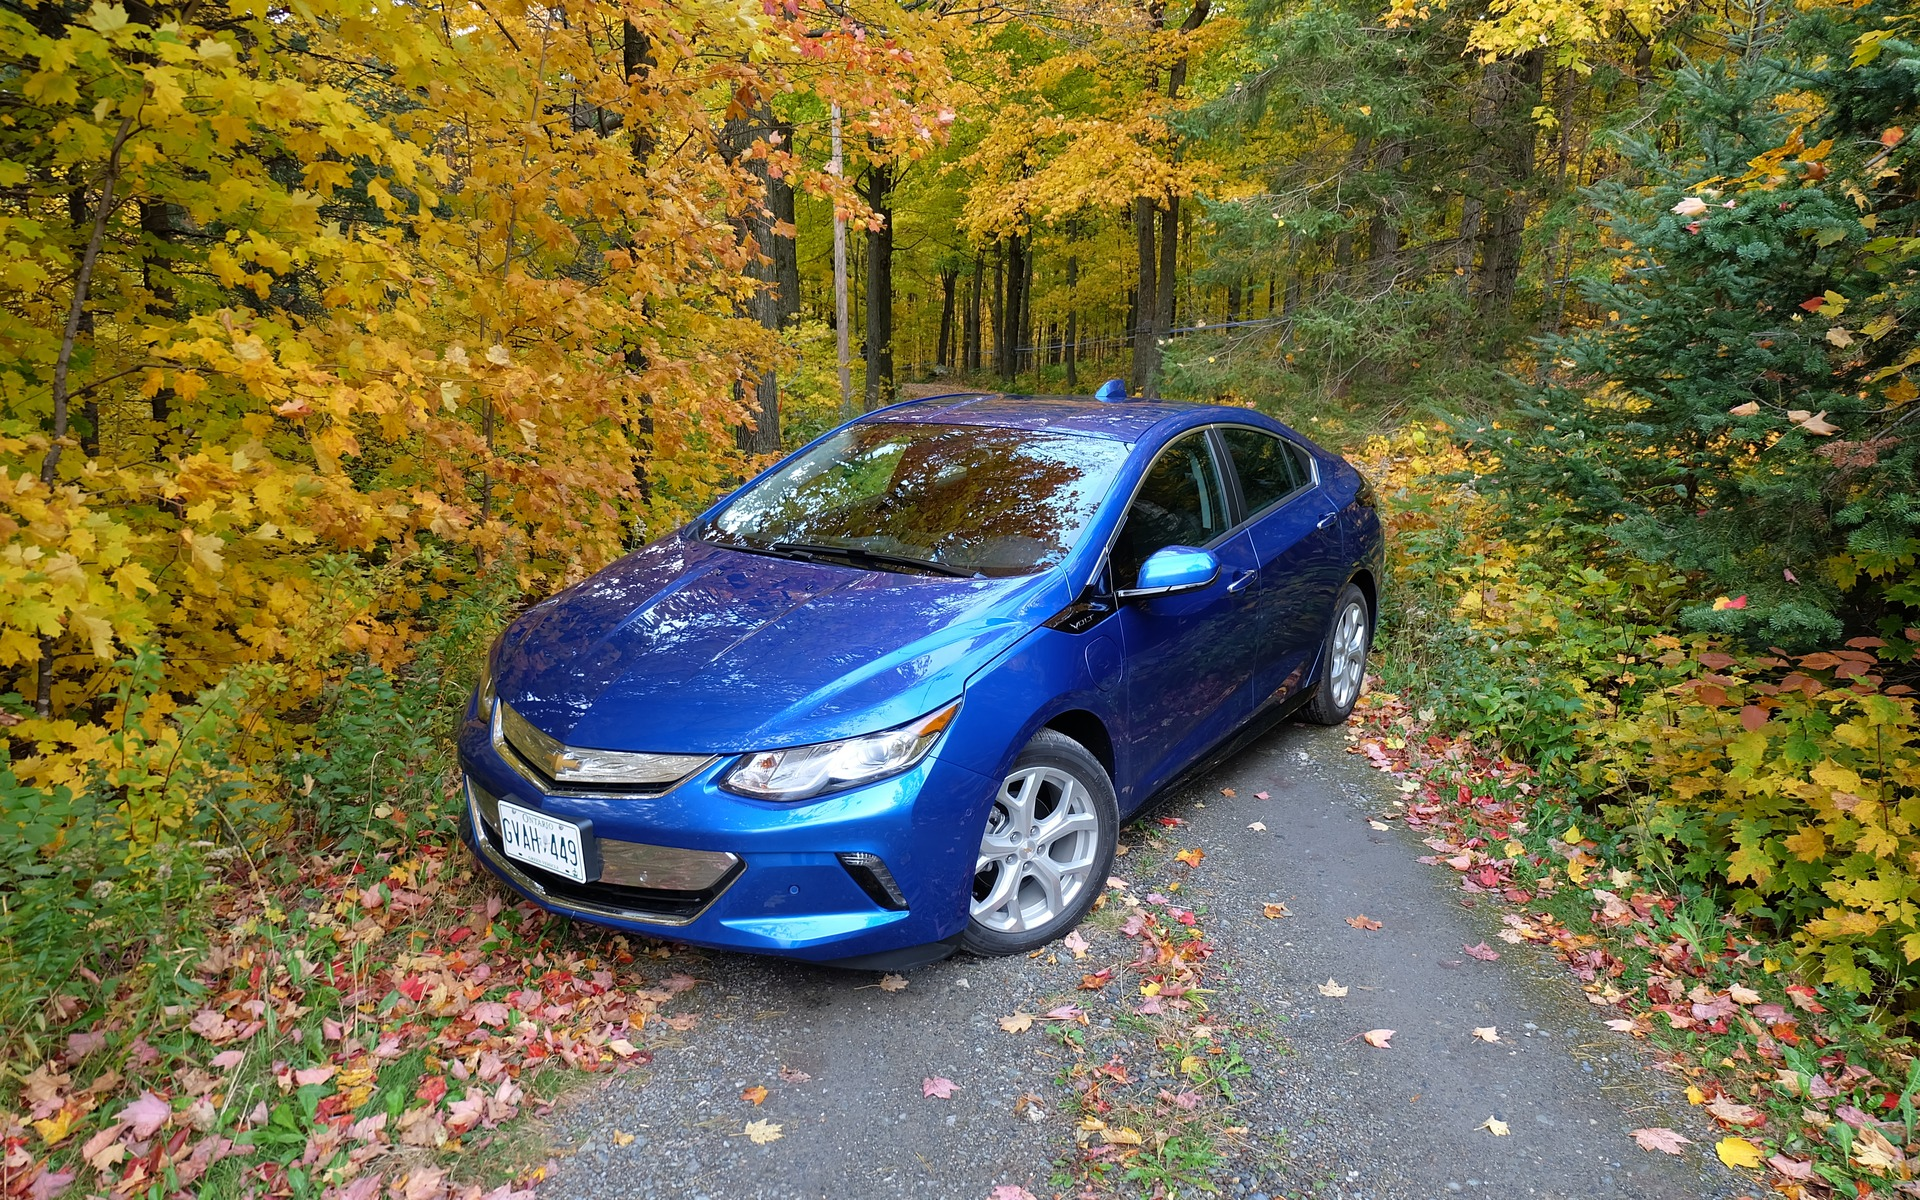 The Chevrolet Volt's appearance has completely changed for 2016.